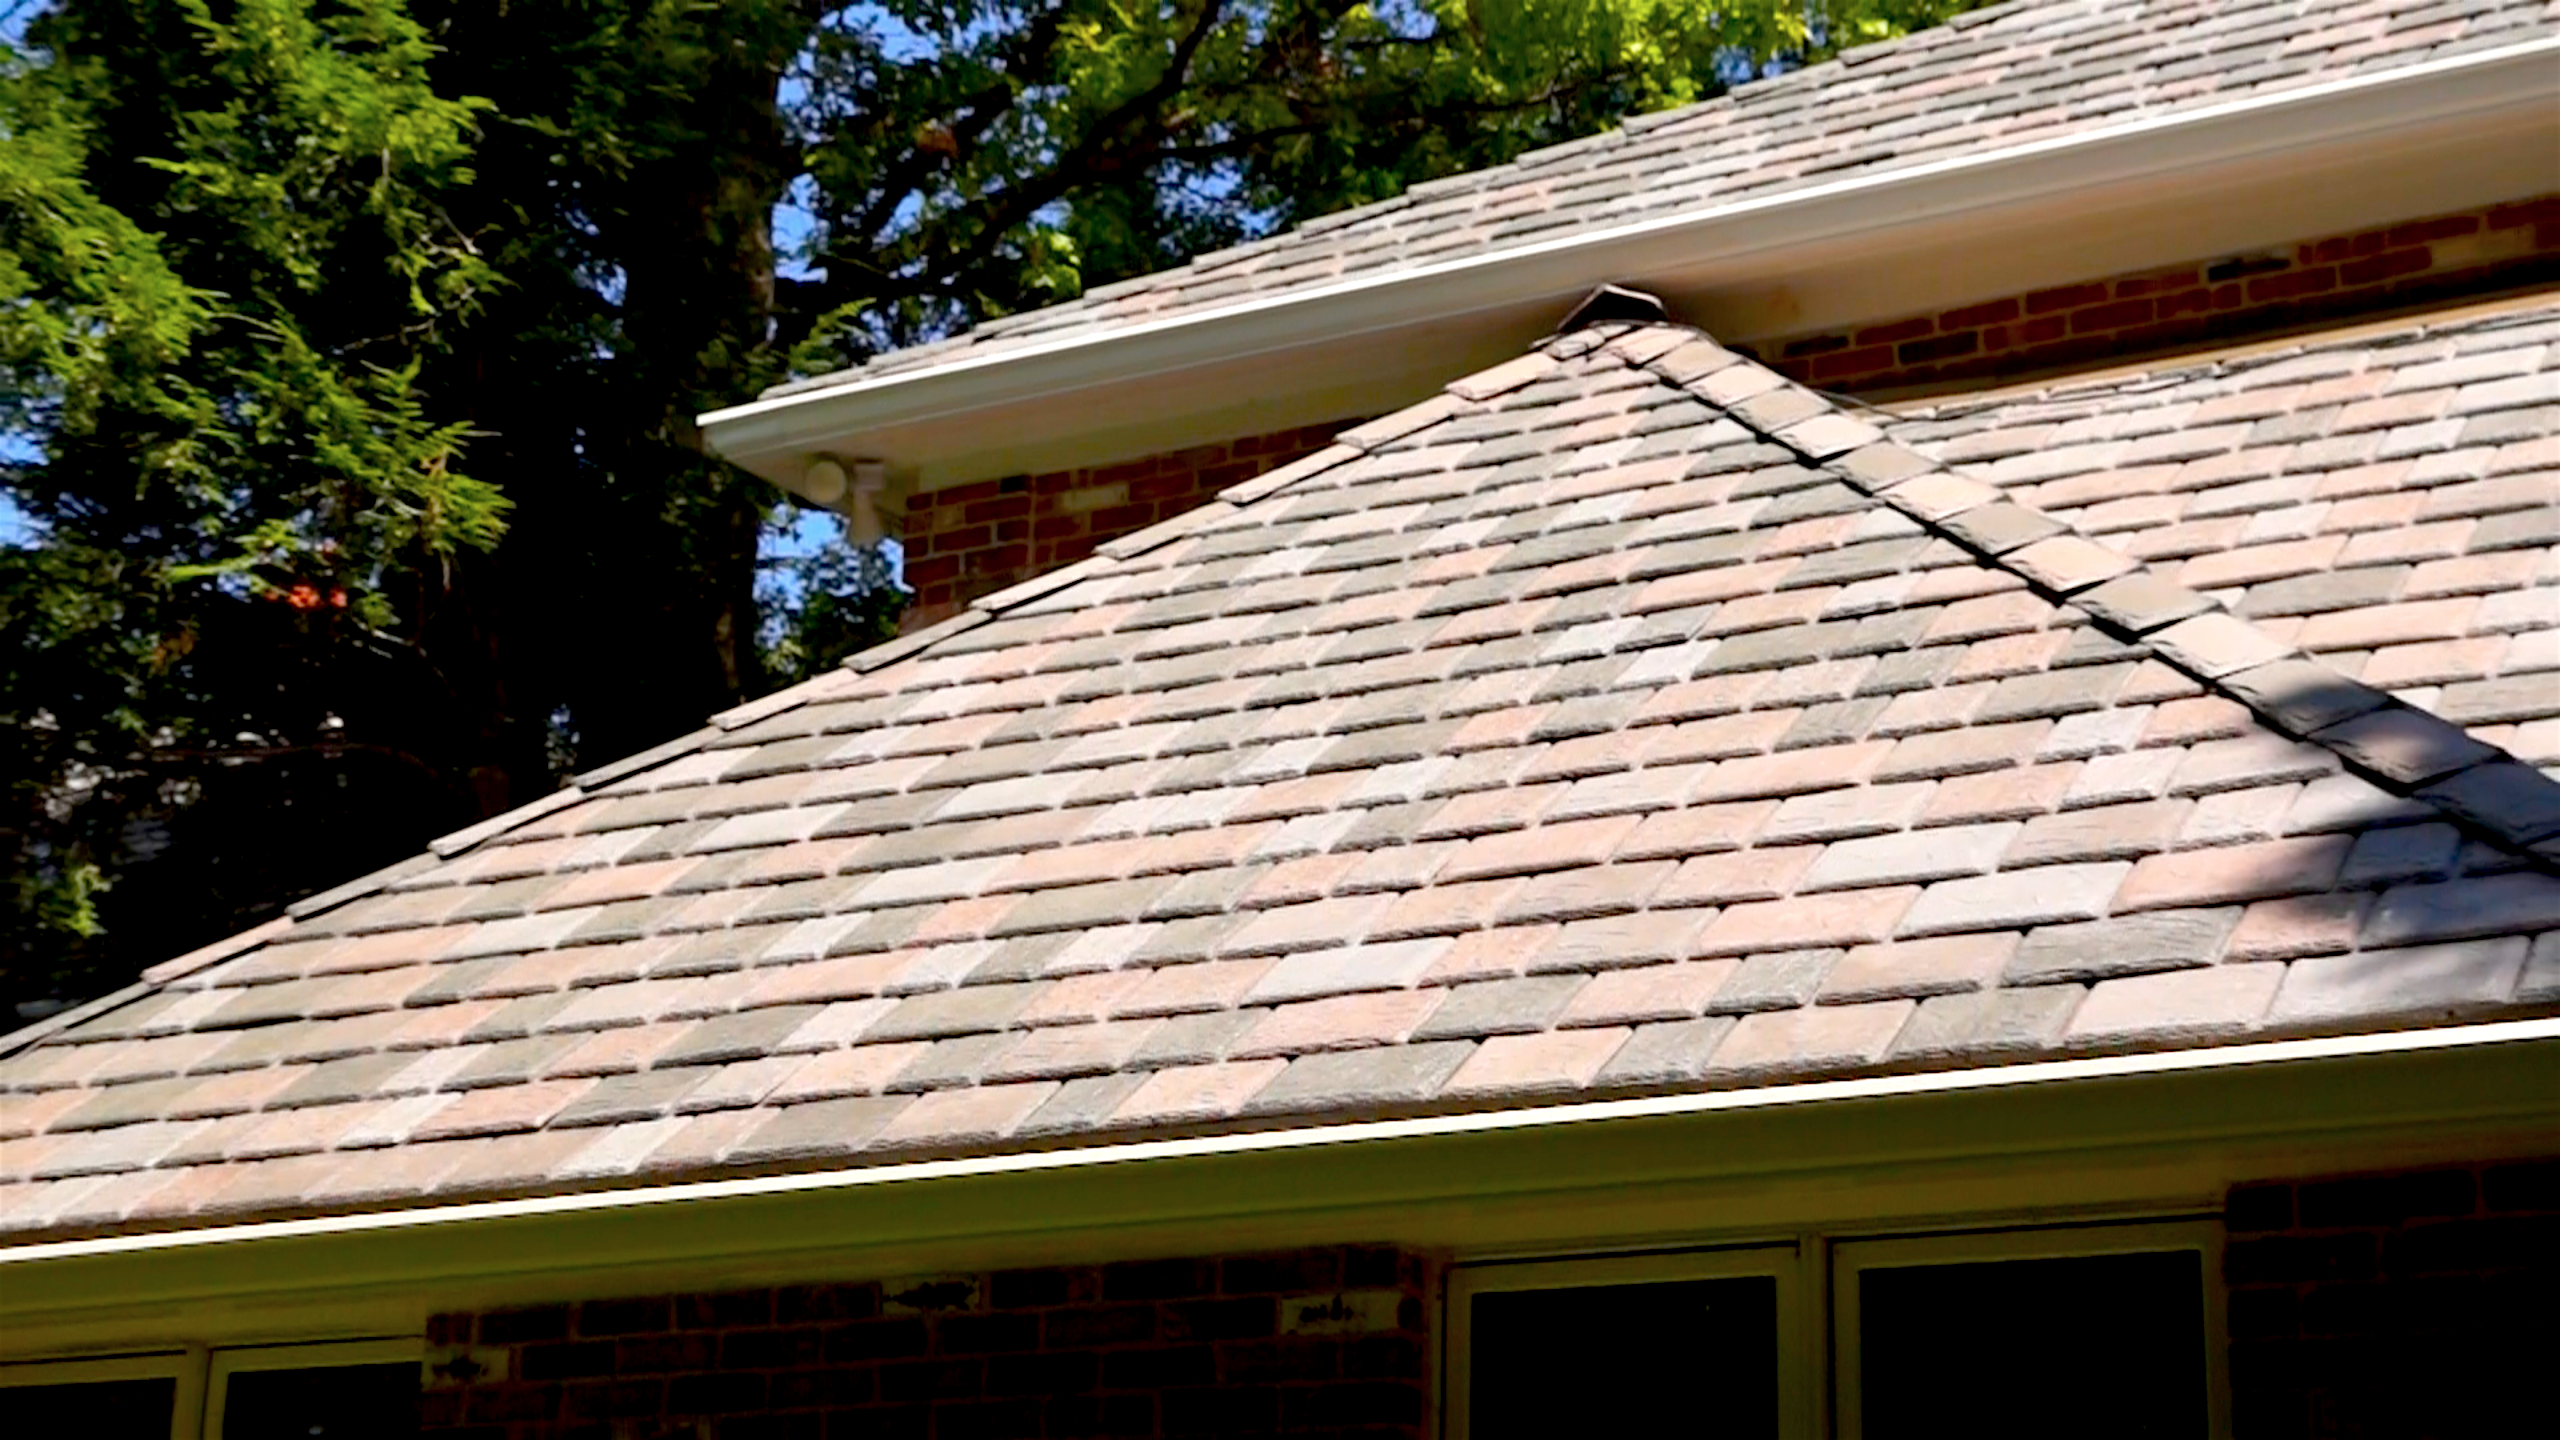 Davinci Roof Cedar Shake Roof By Davinci Roofscapes